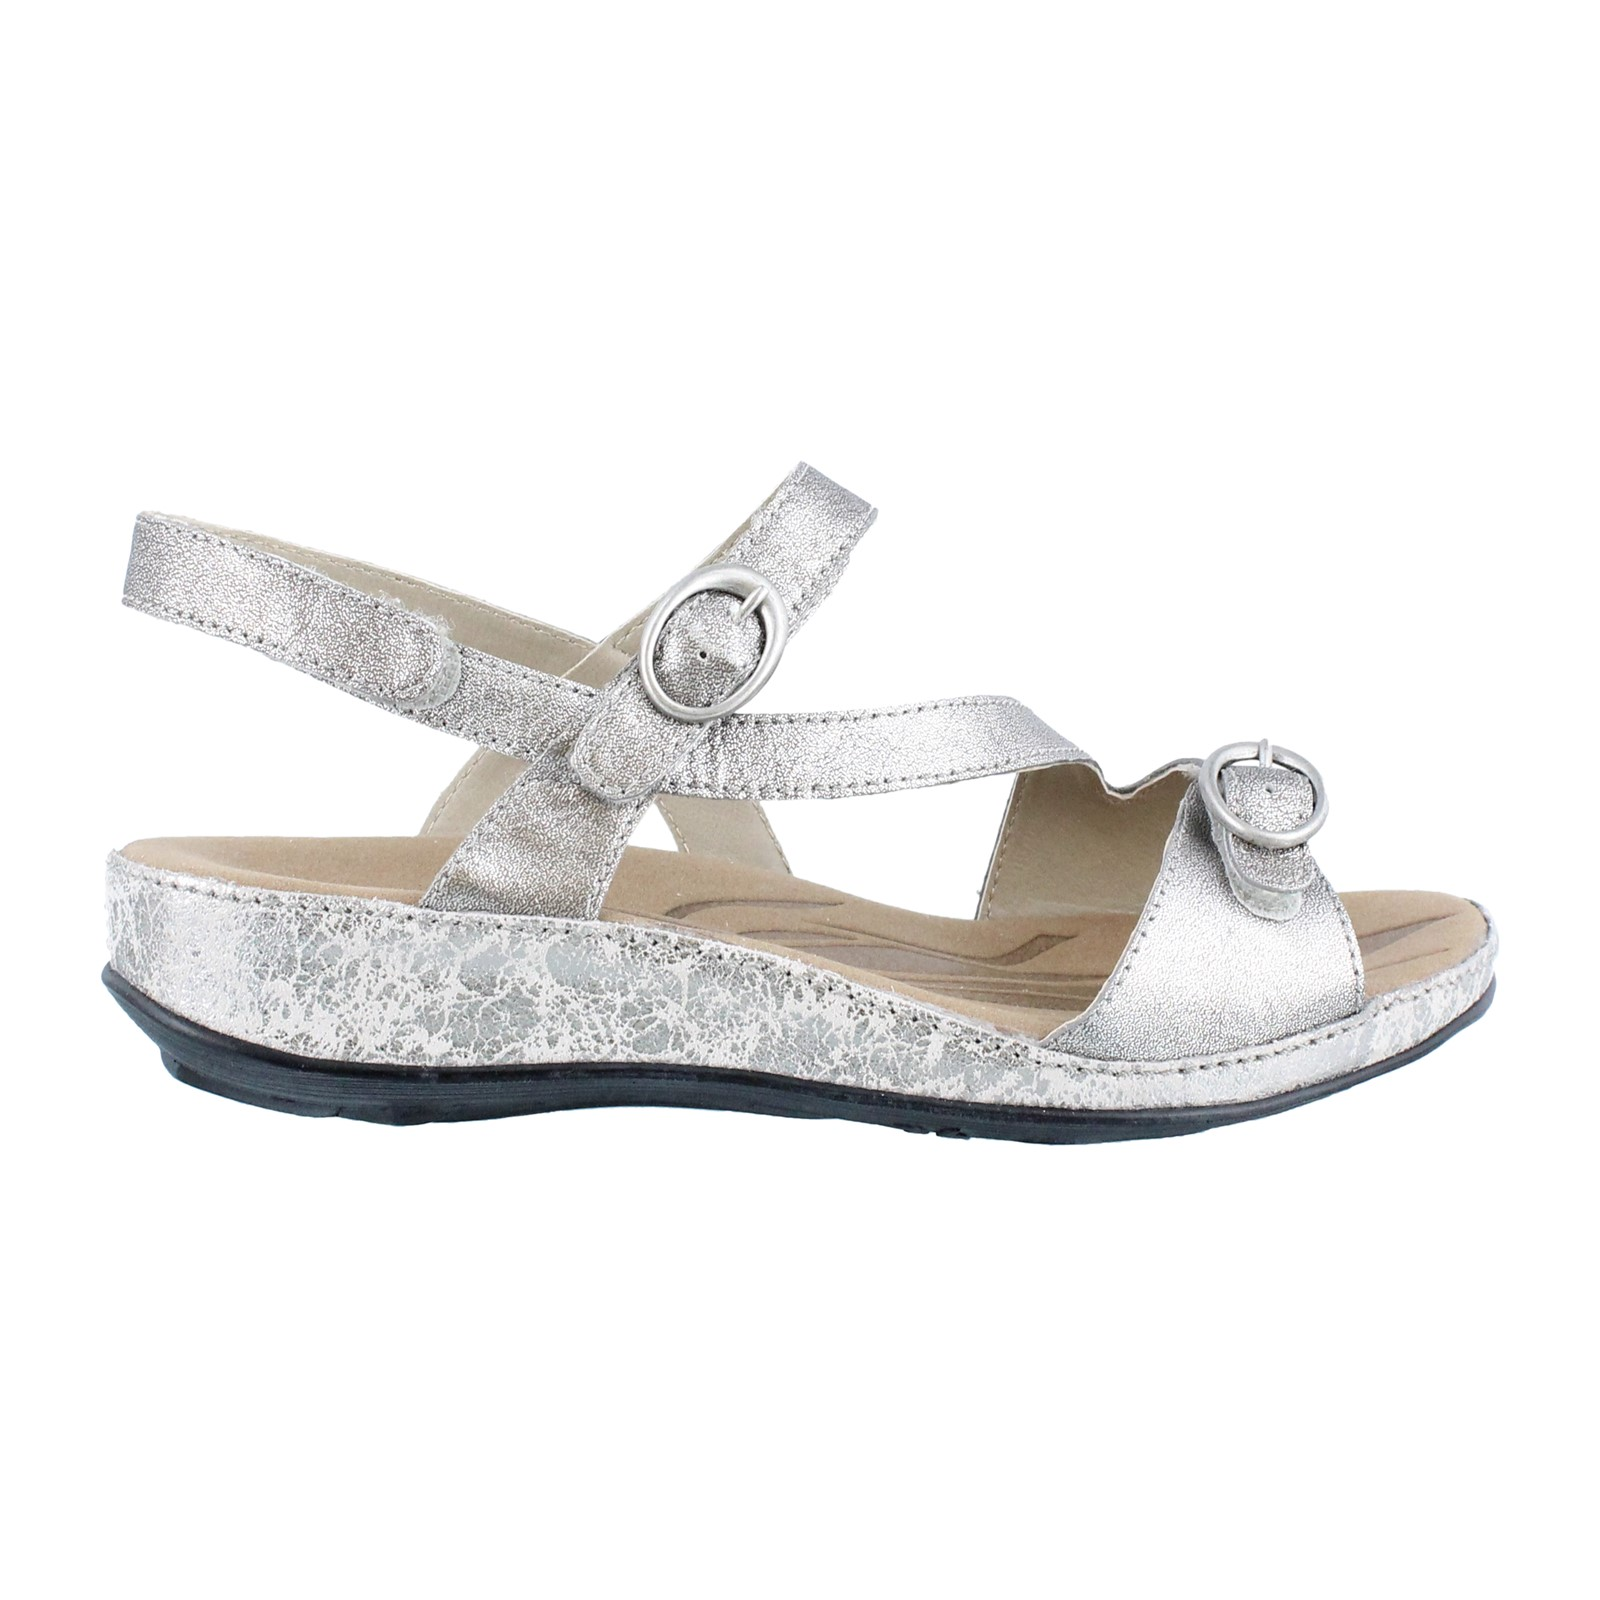 Women's Romika, Fidschi 48 Low Sandals